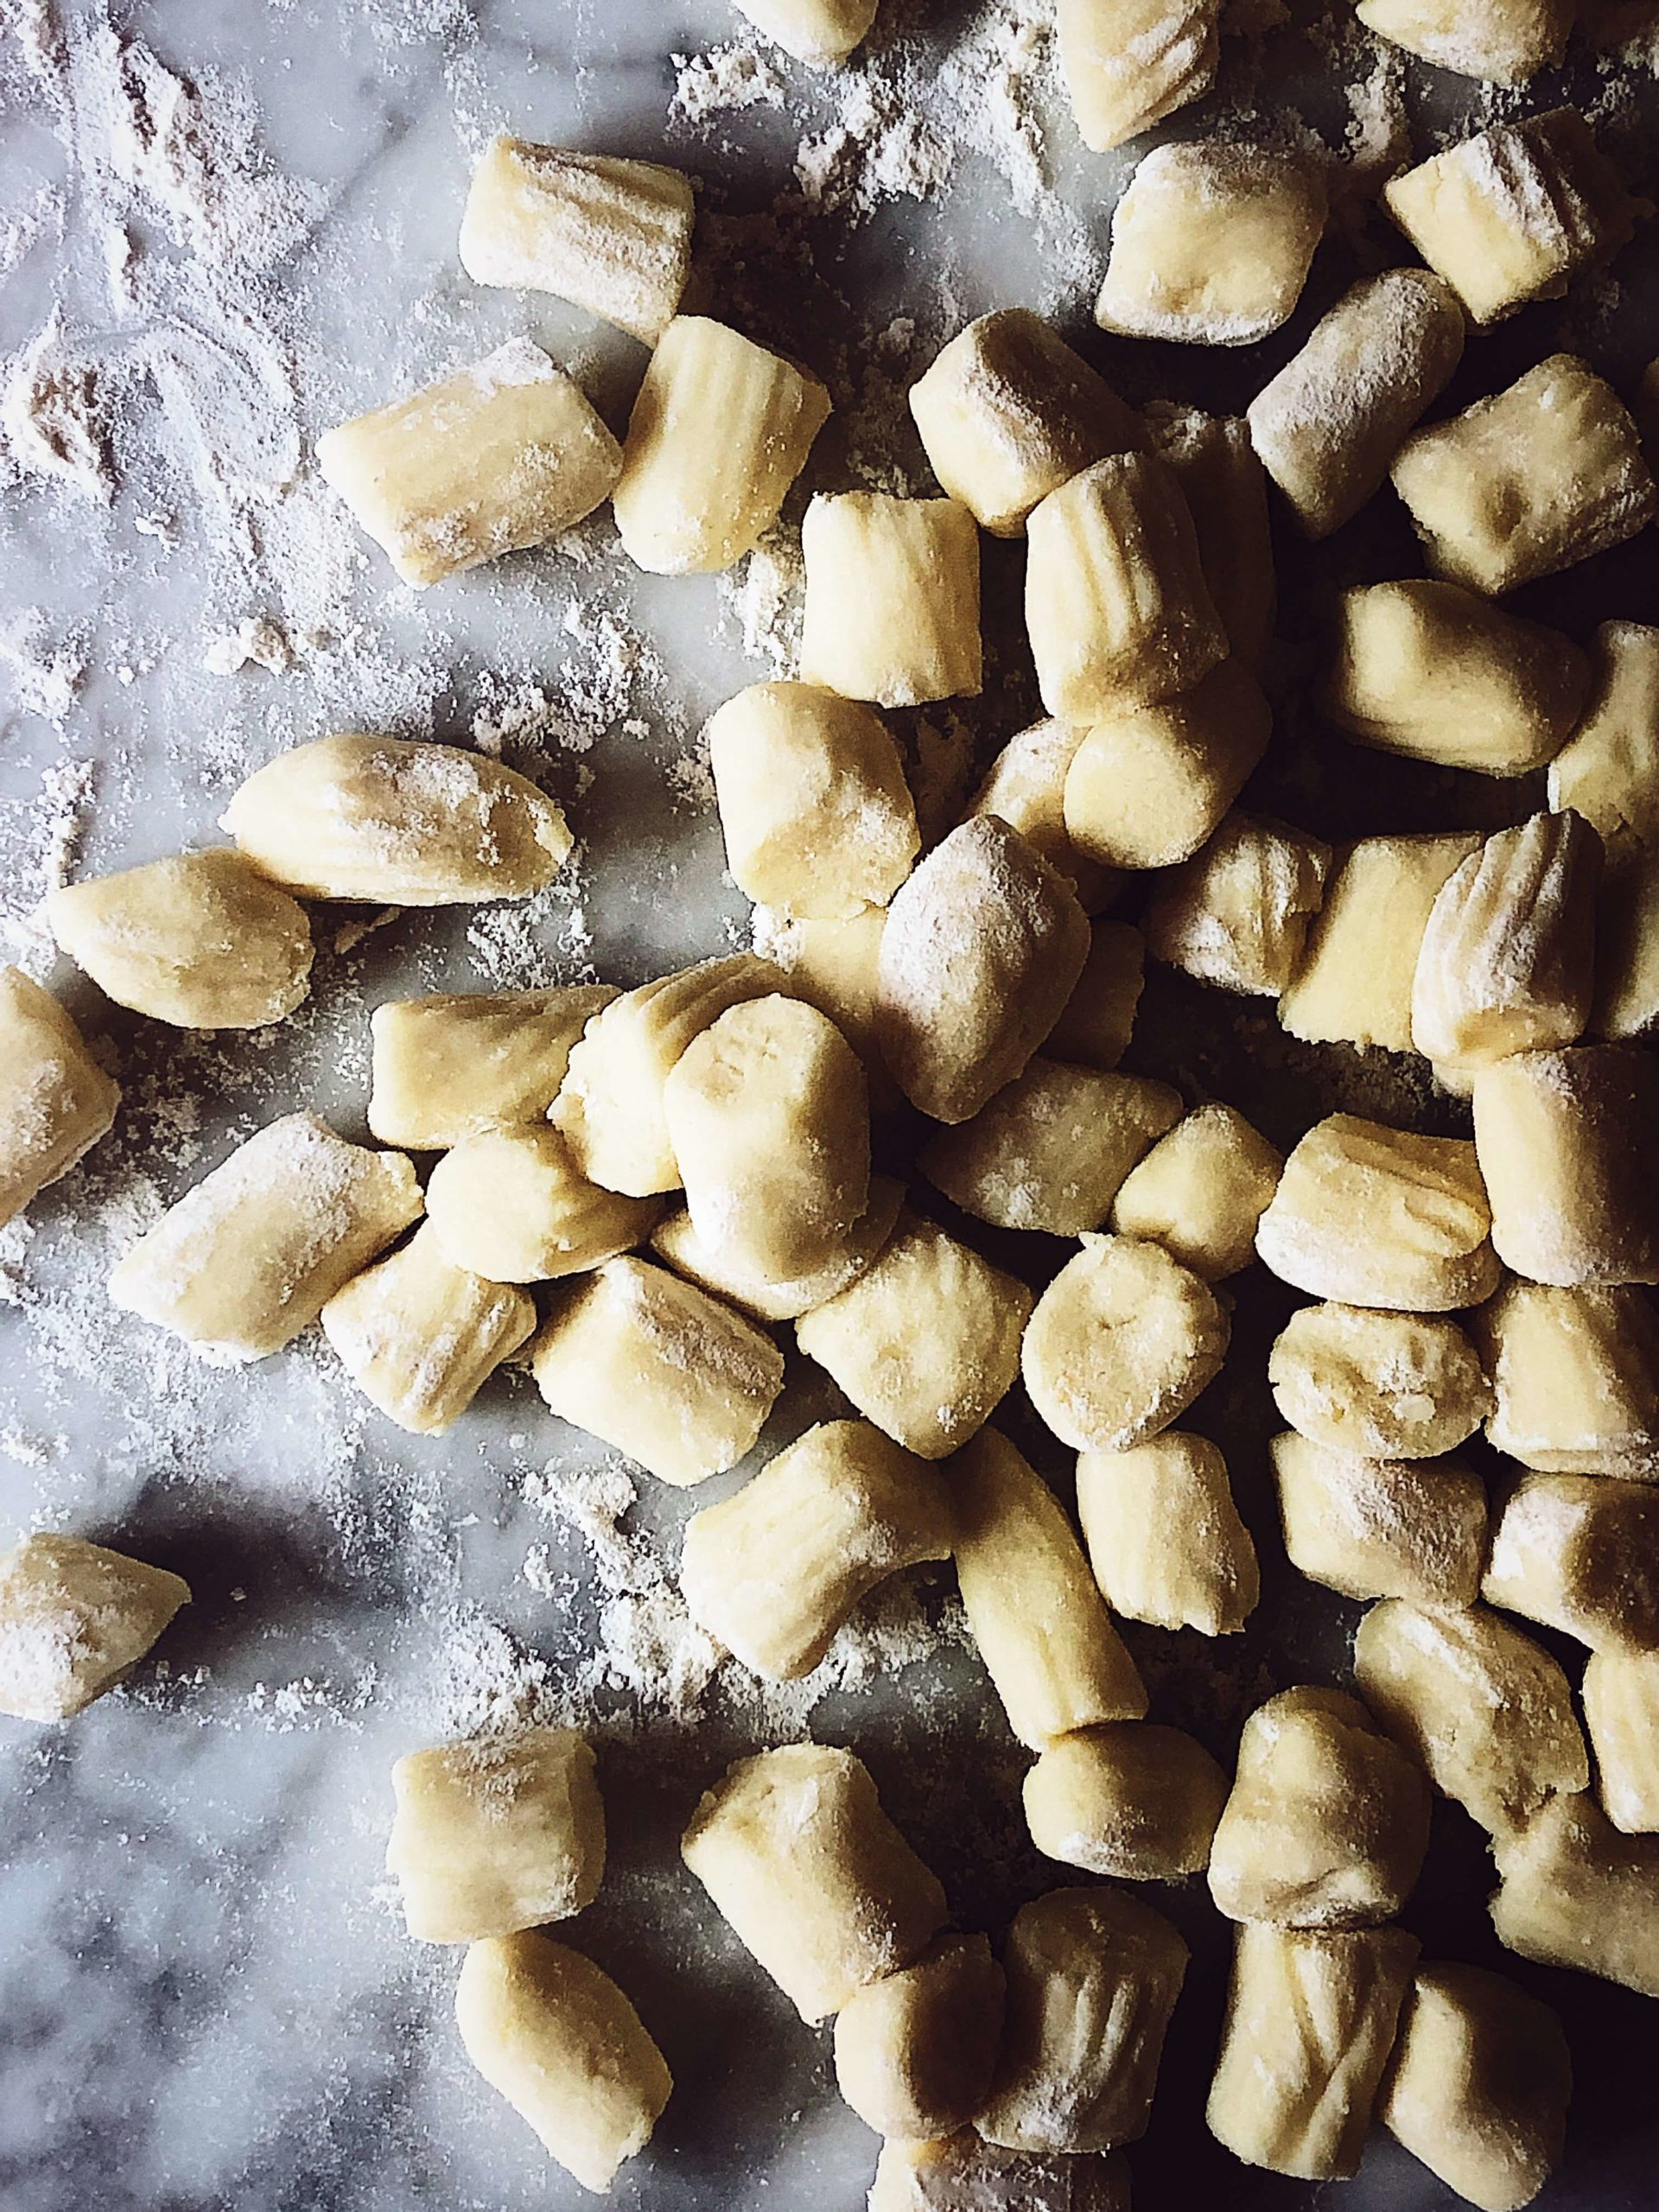 How to make authentic Italian gnocchi from scratch